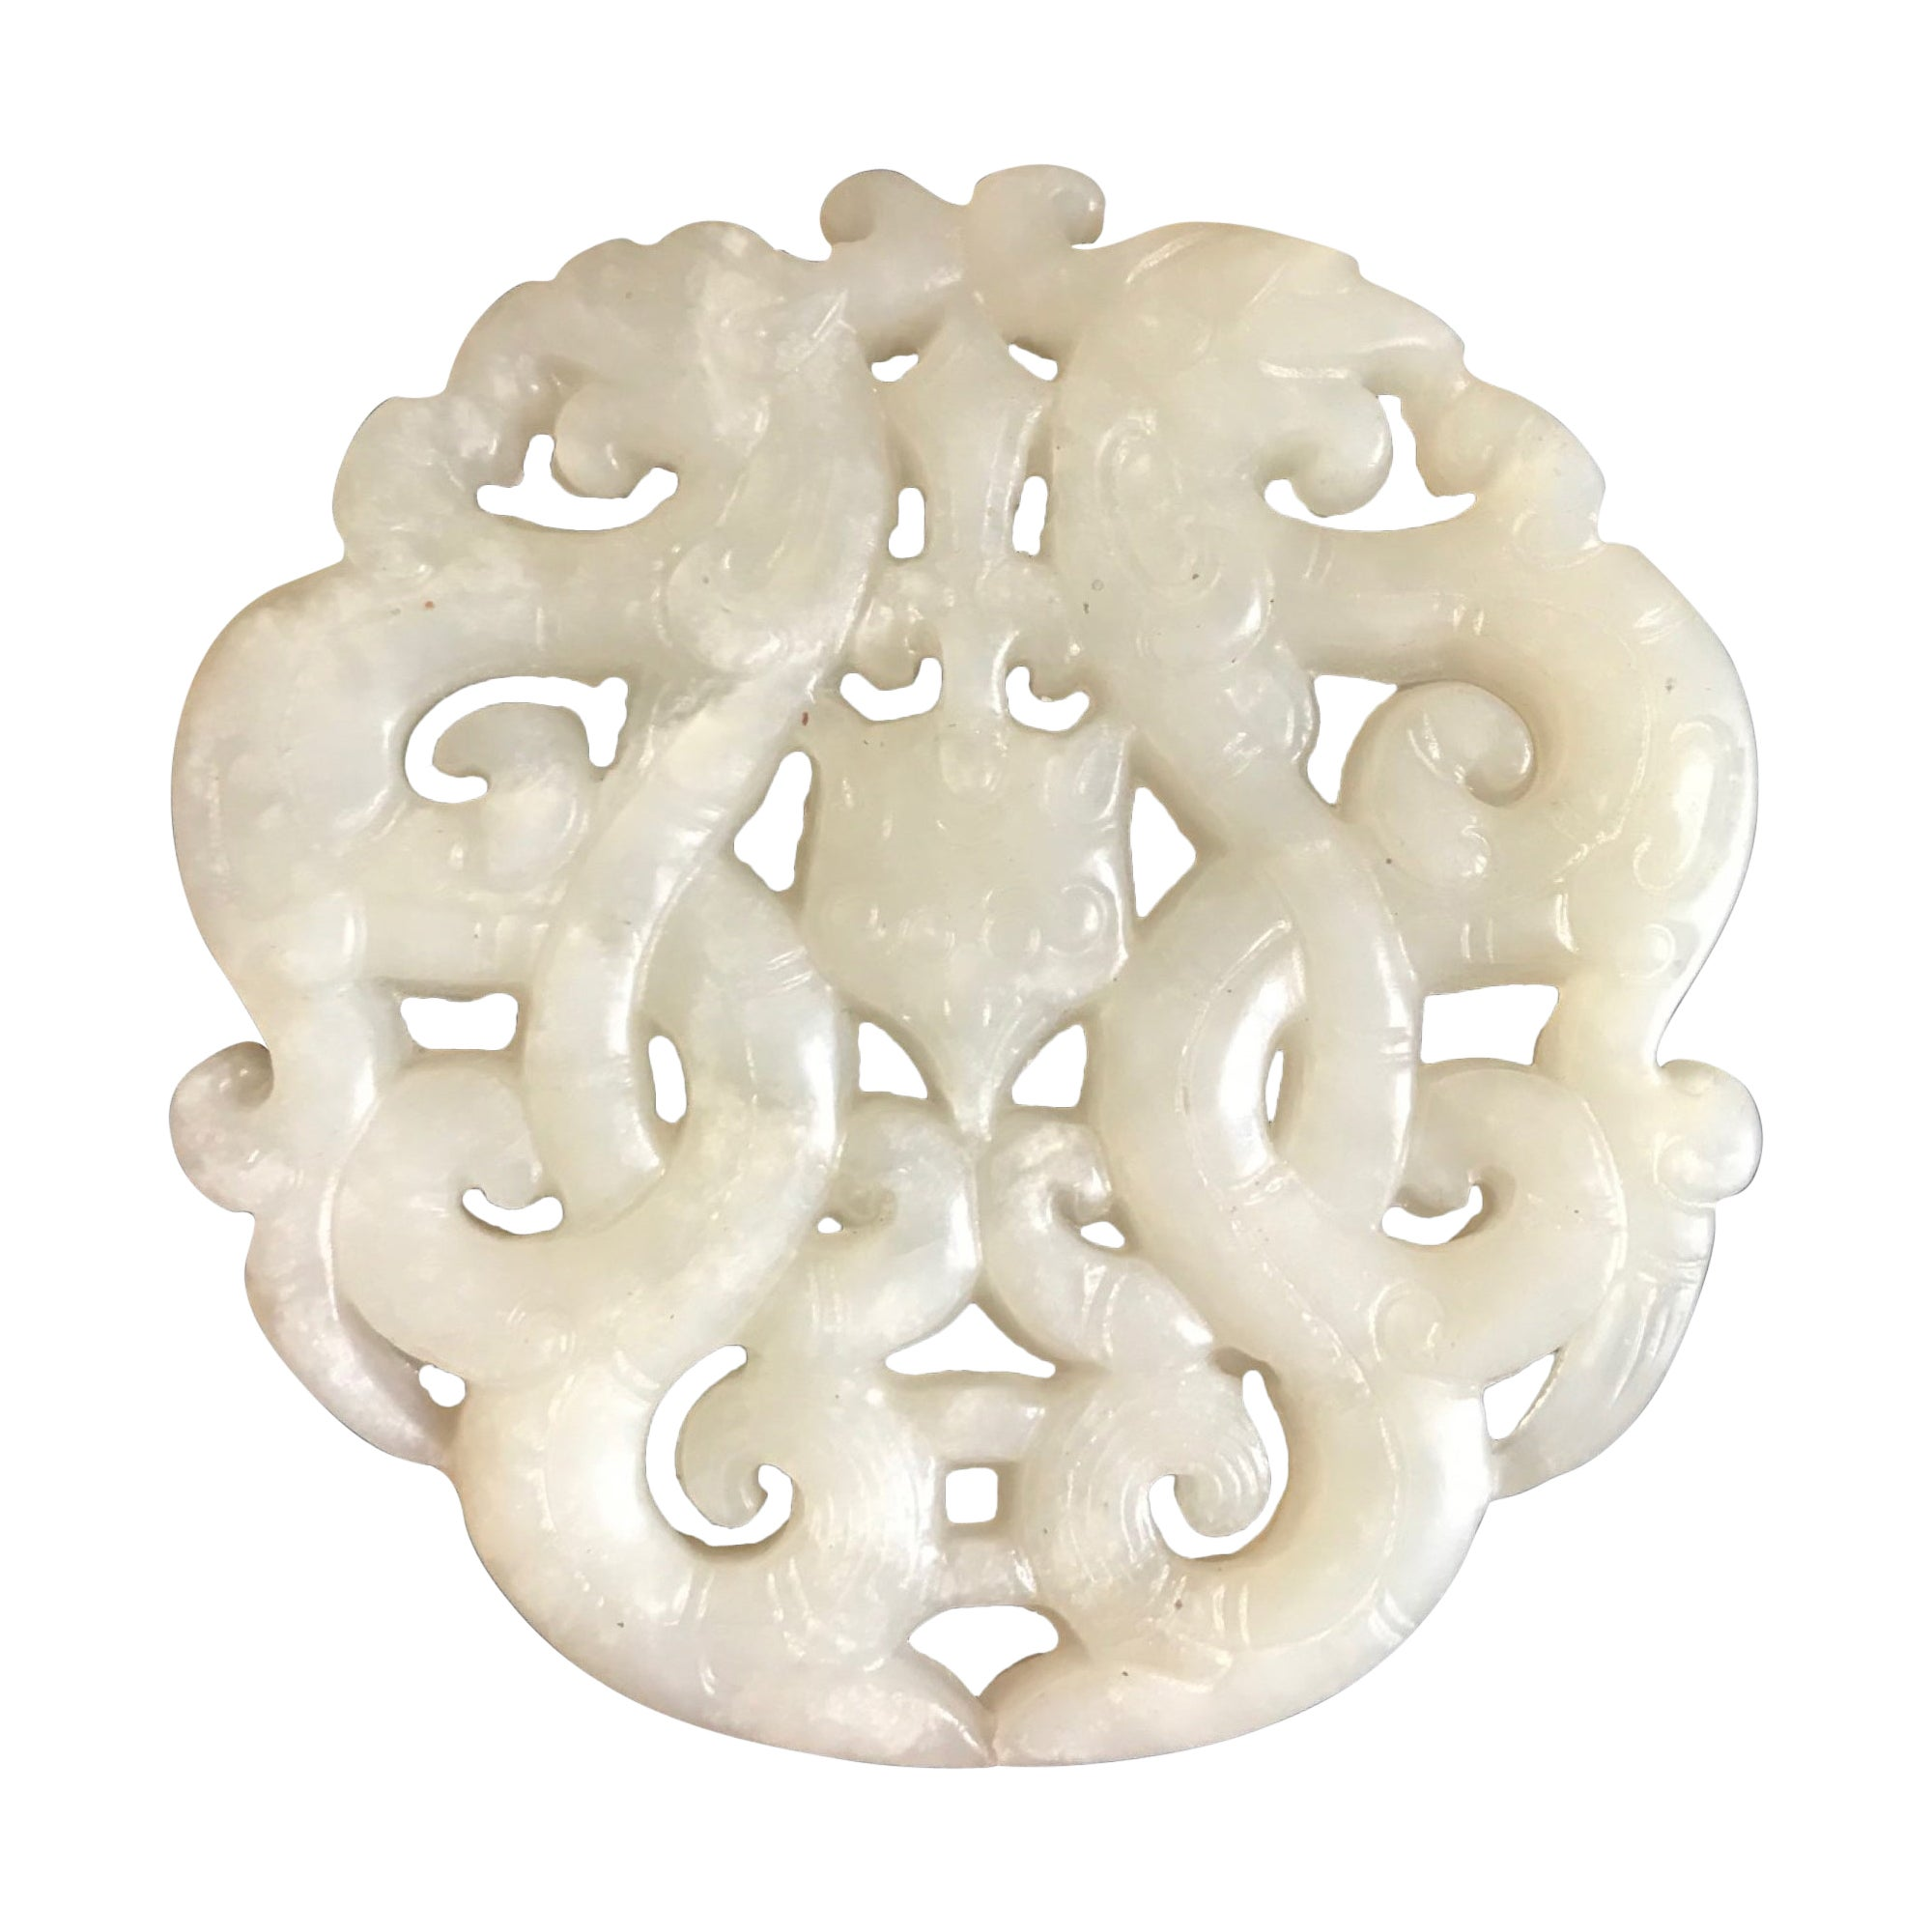 Qing Dynasty Chinese Carved Jade Medallion Pierced Pendant, Plaque